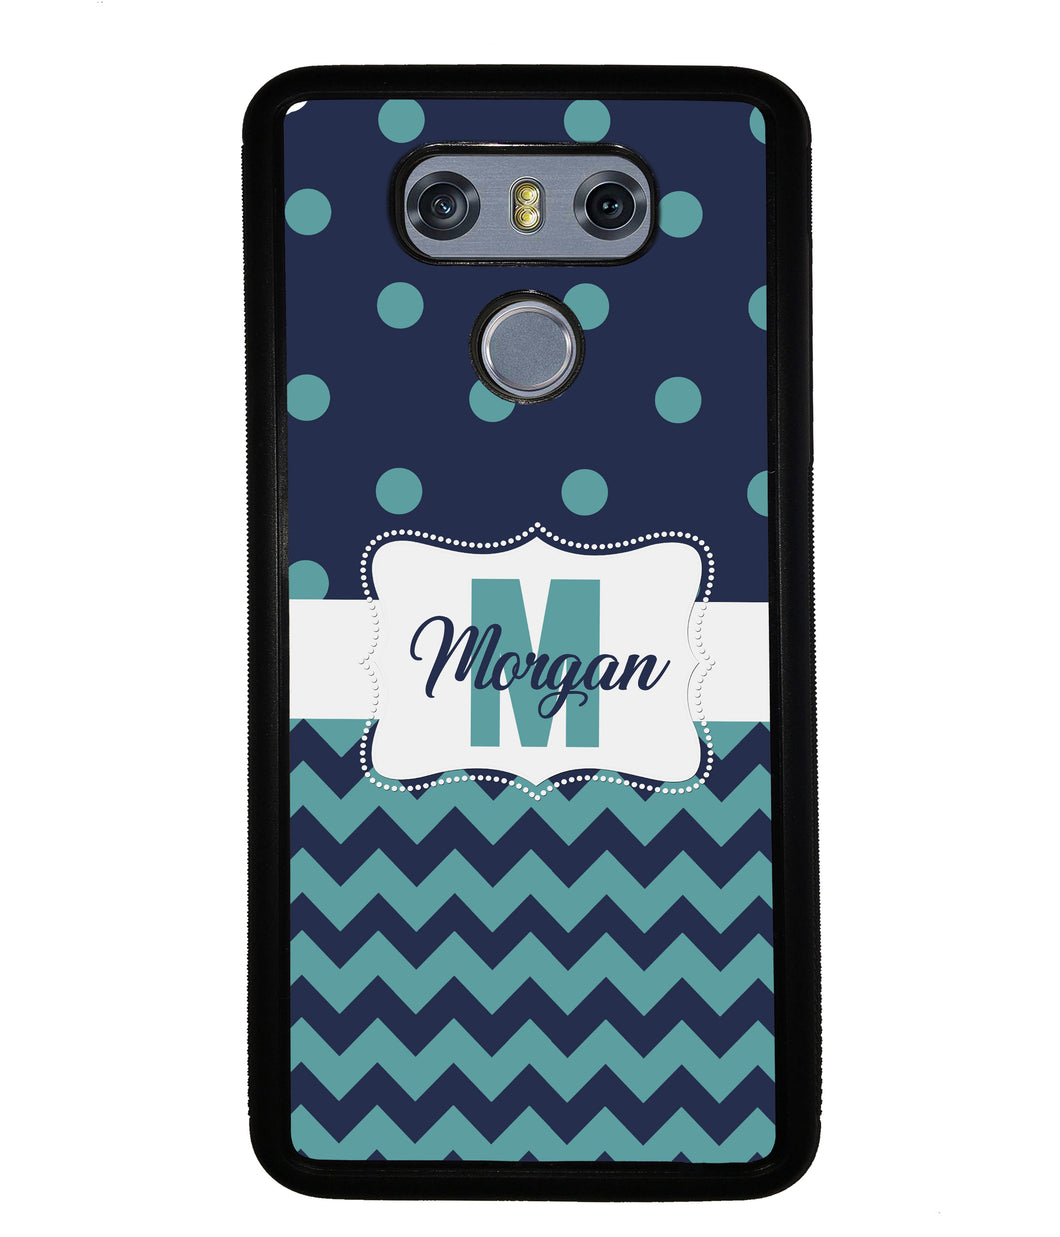 Teal Dark Blue Polka Dot Chevron Personalized | LG Phone Case